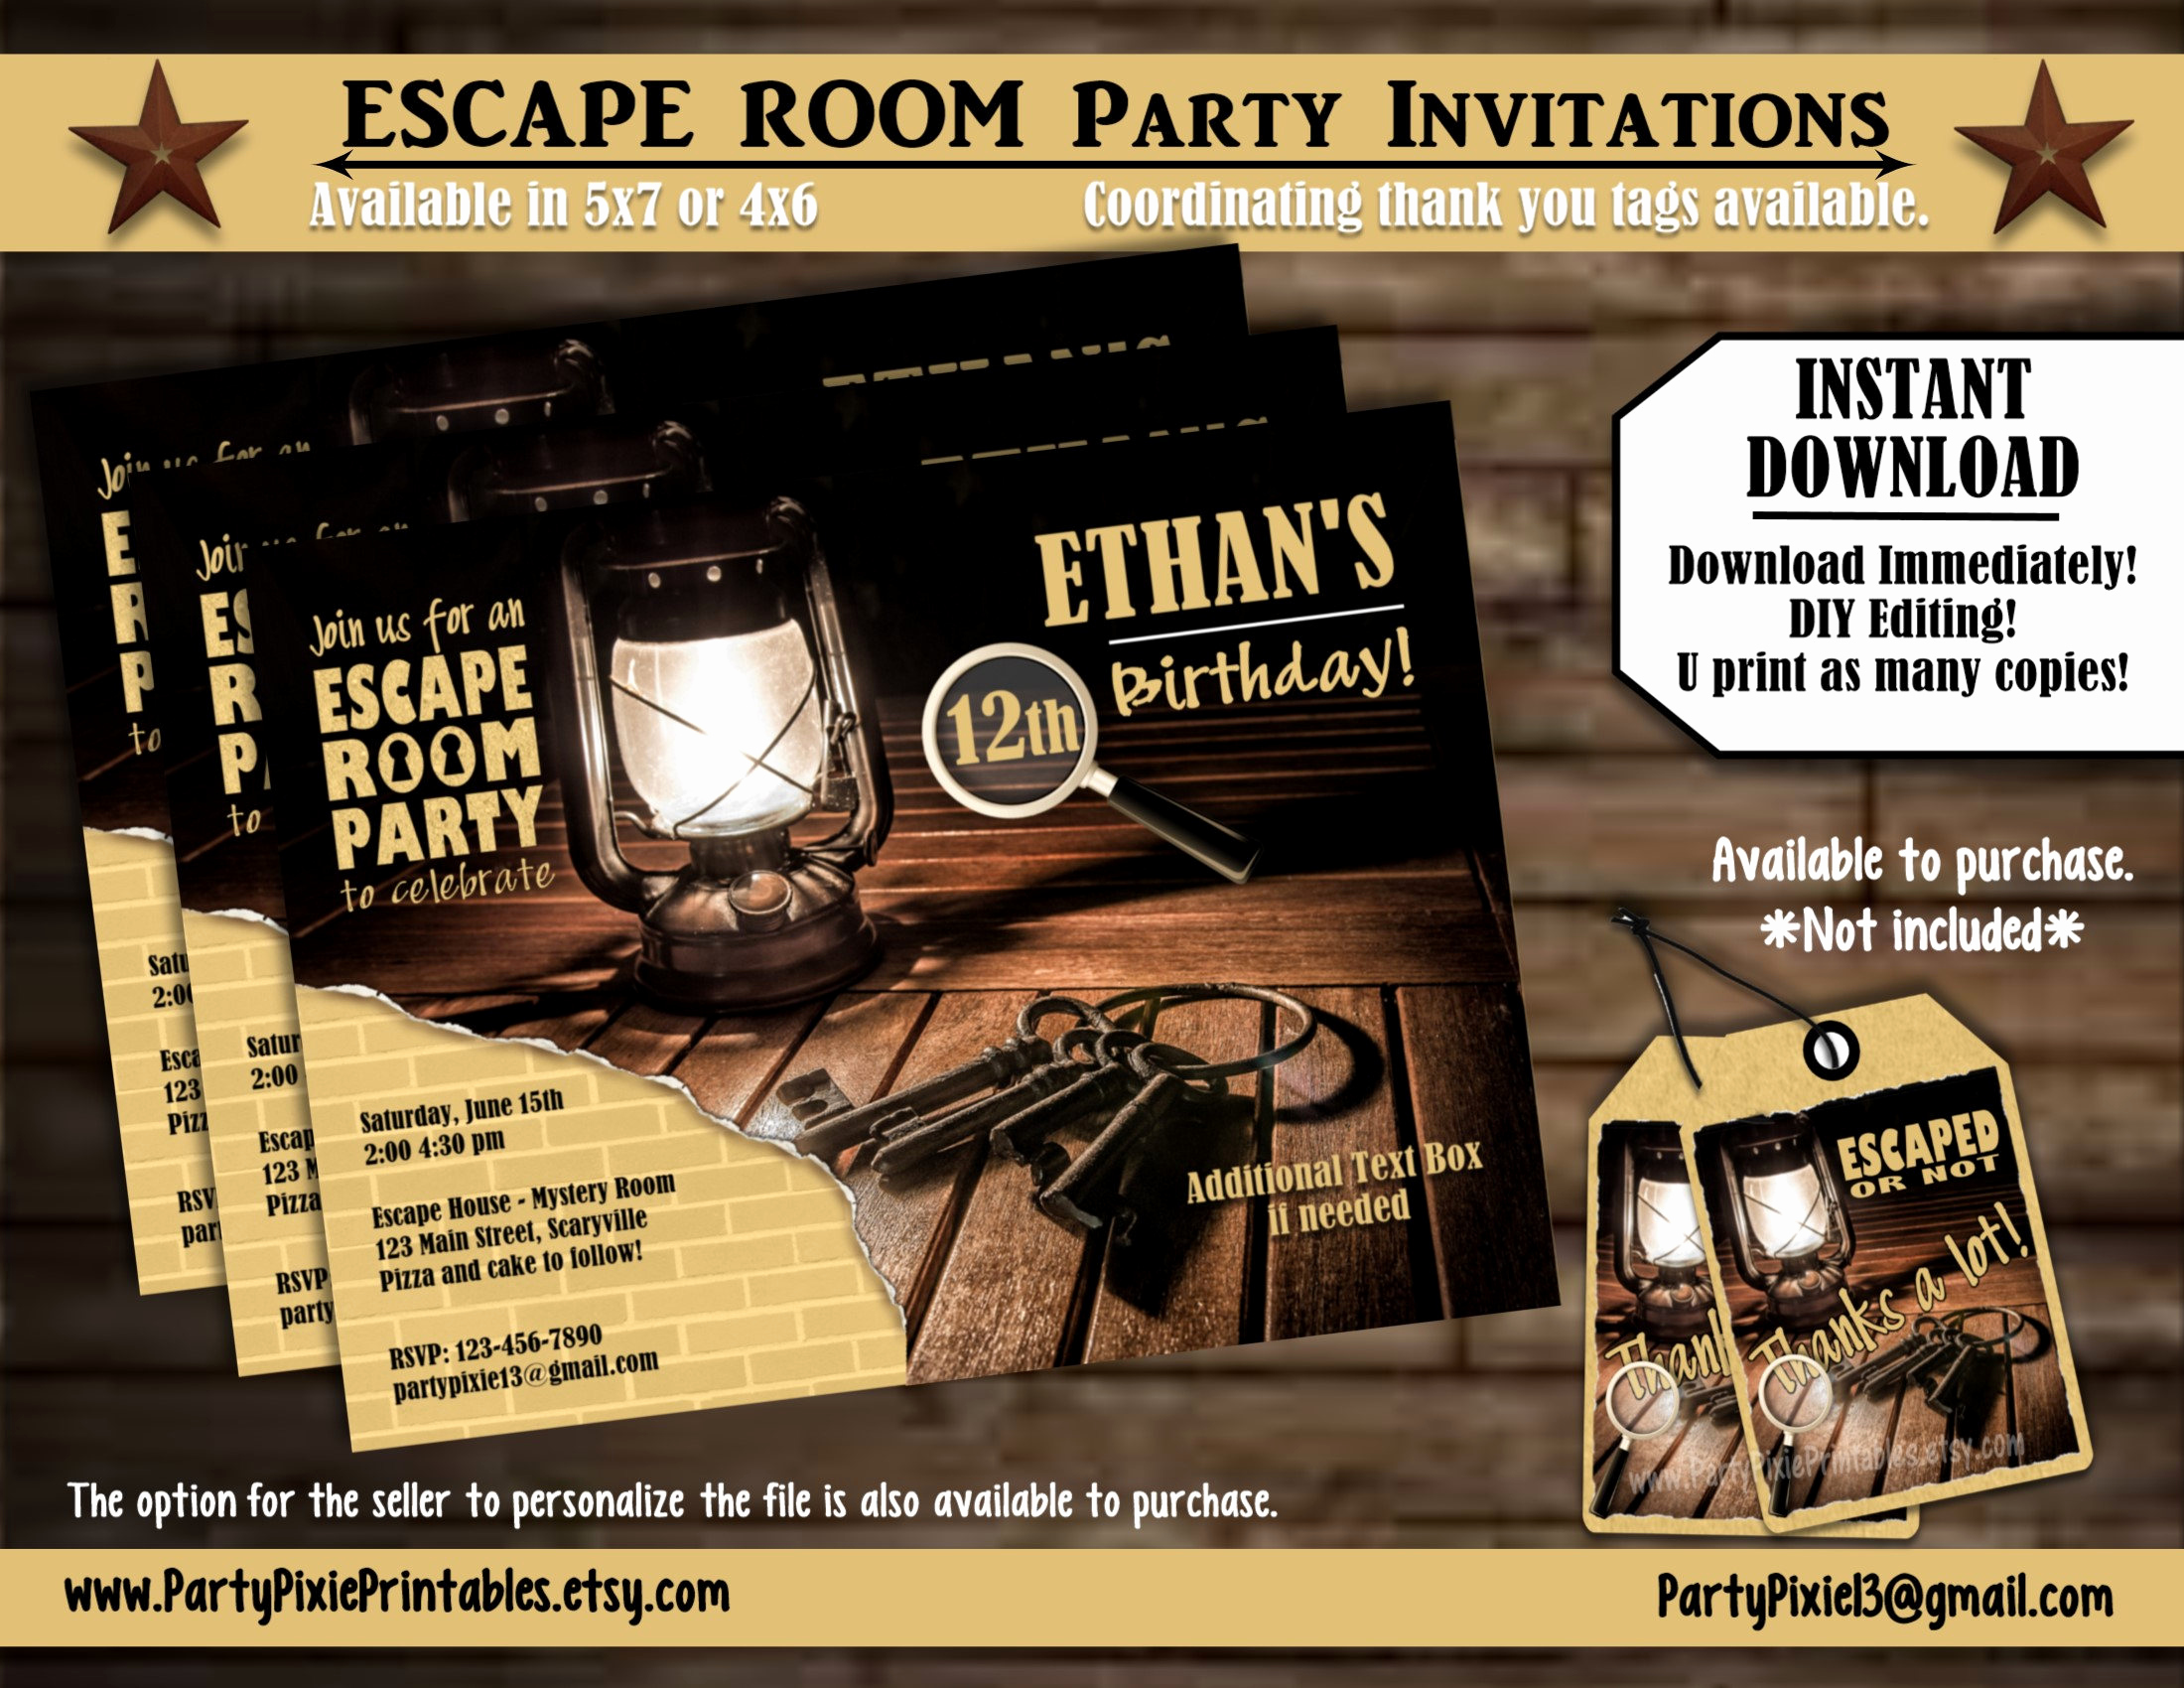 Escape Room Birthday Invitation Lovely Instant Download Escape Room Party Invitations 5x7 4x6